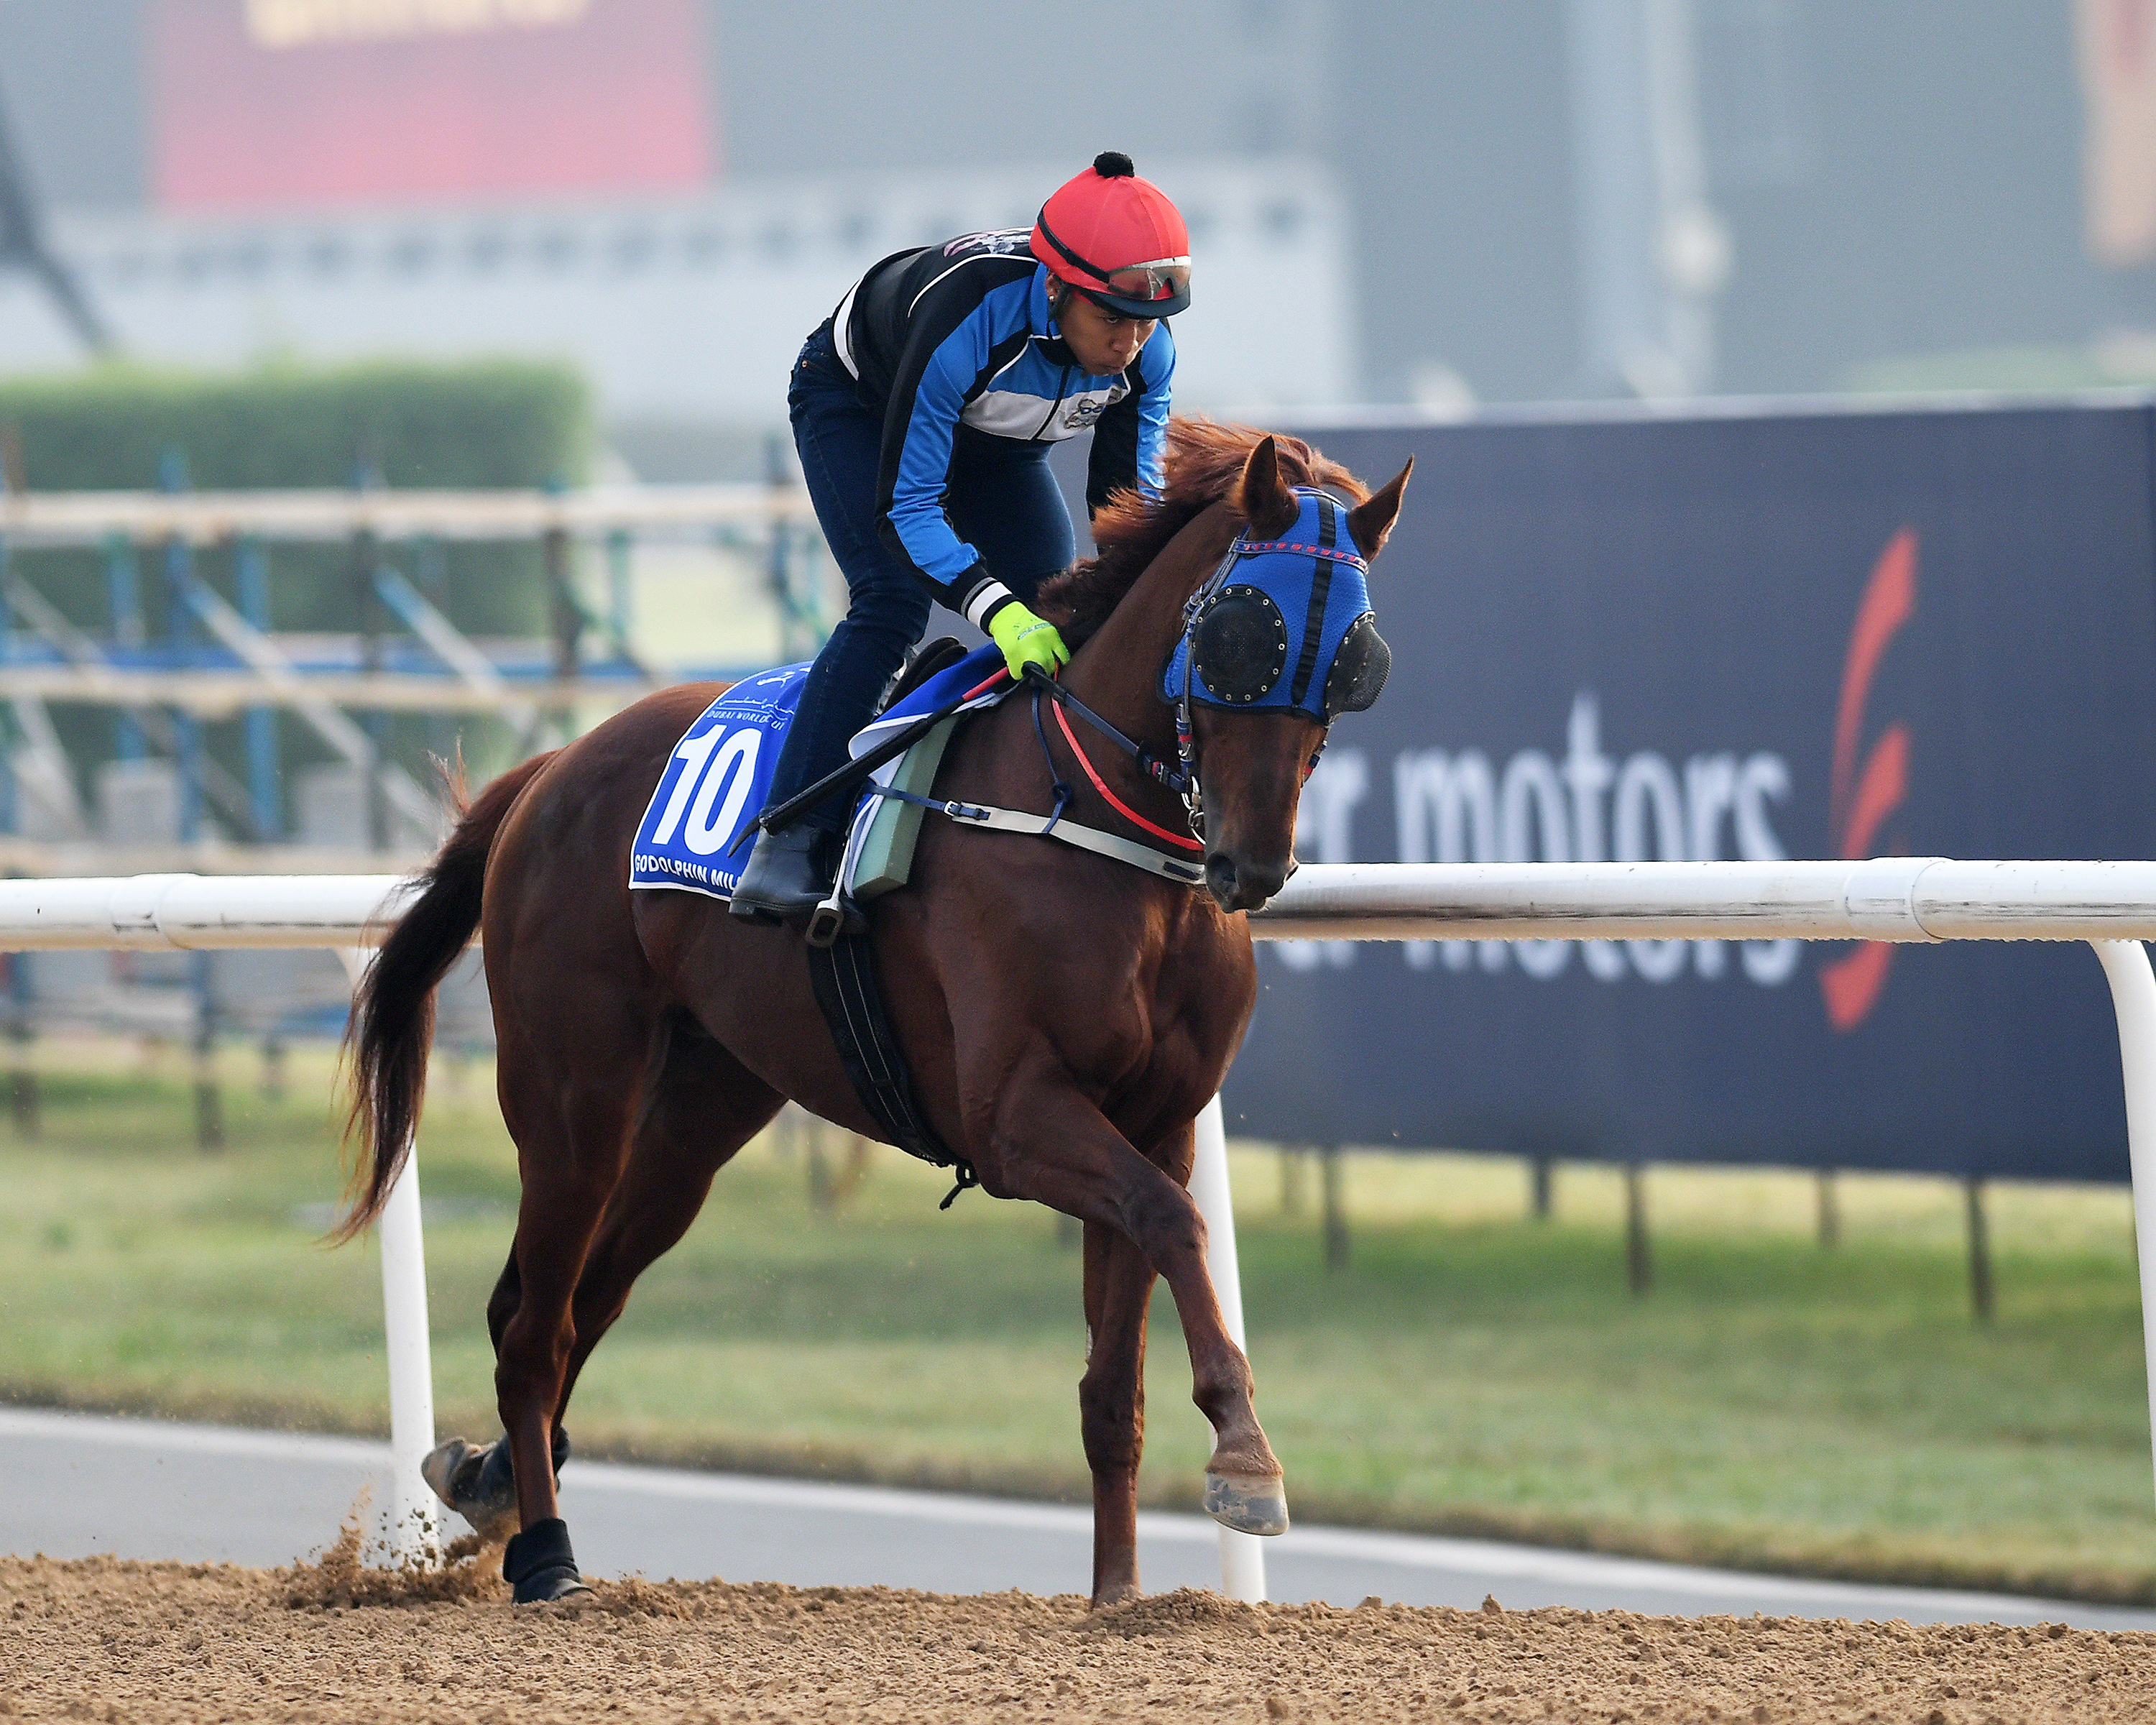 Horse Times Egypt: Equestrian Magazine :News :DUBAI WORLD CUP 2017 : KOREA GOING THE WHOLE NINE YARDS